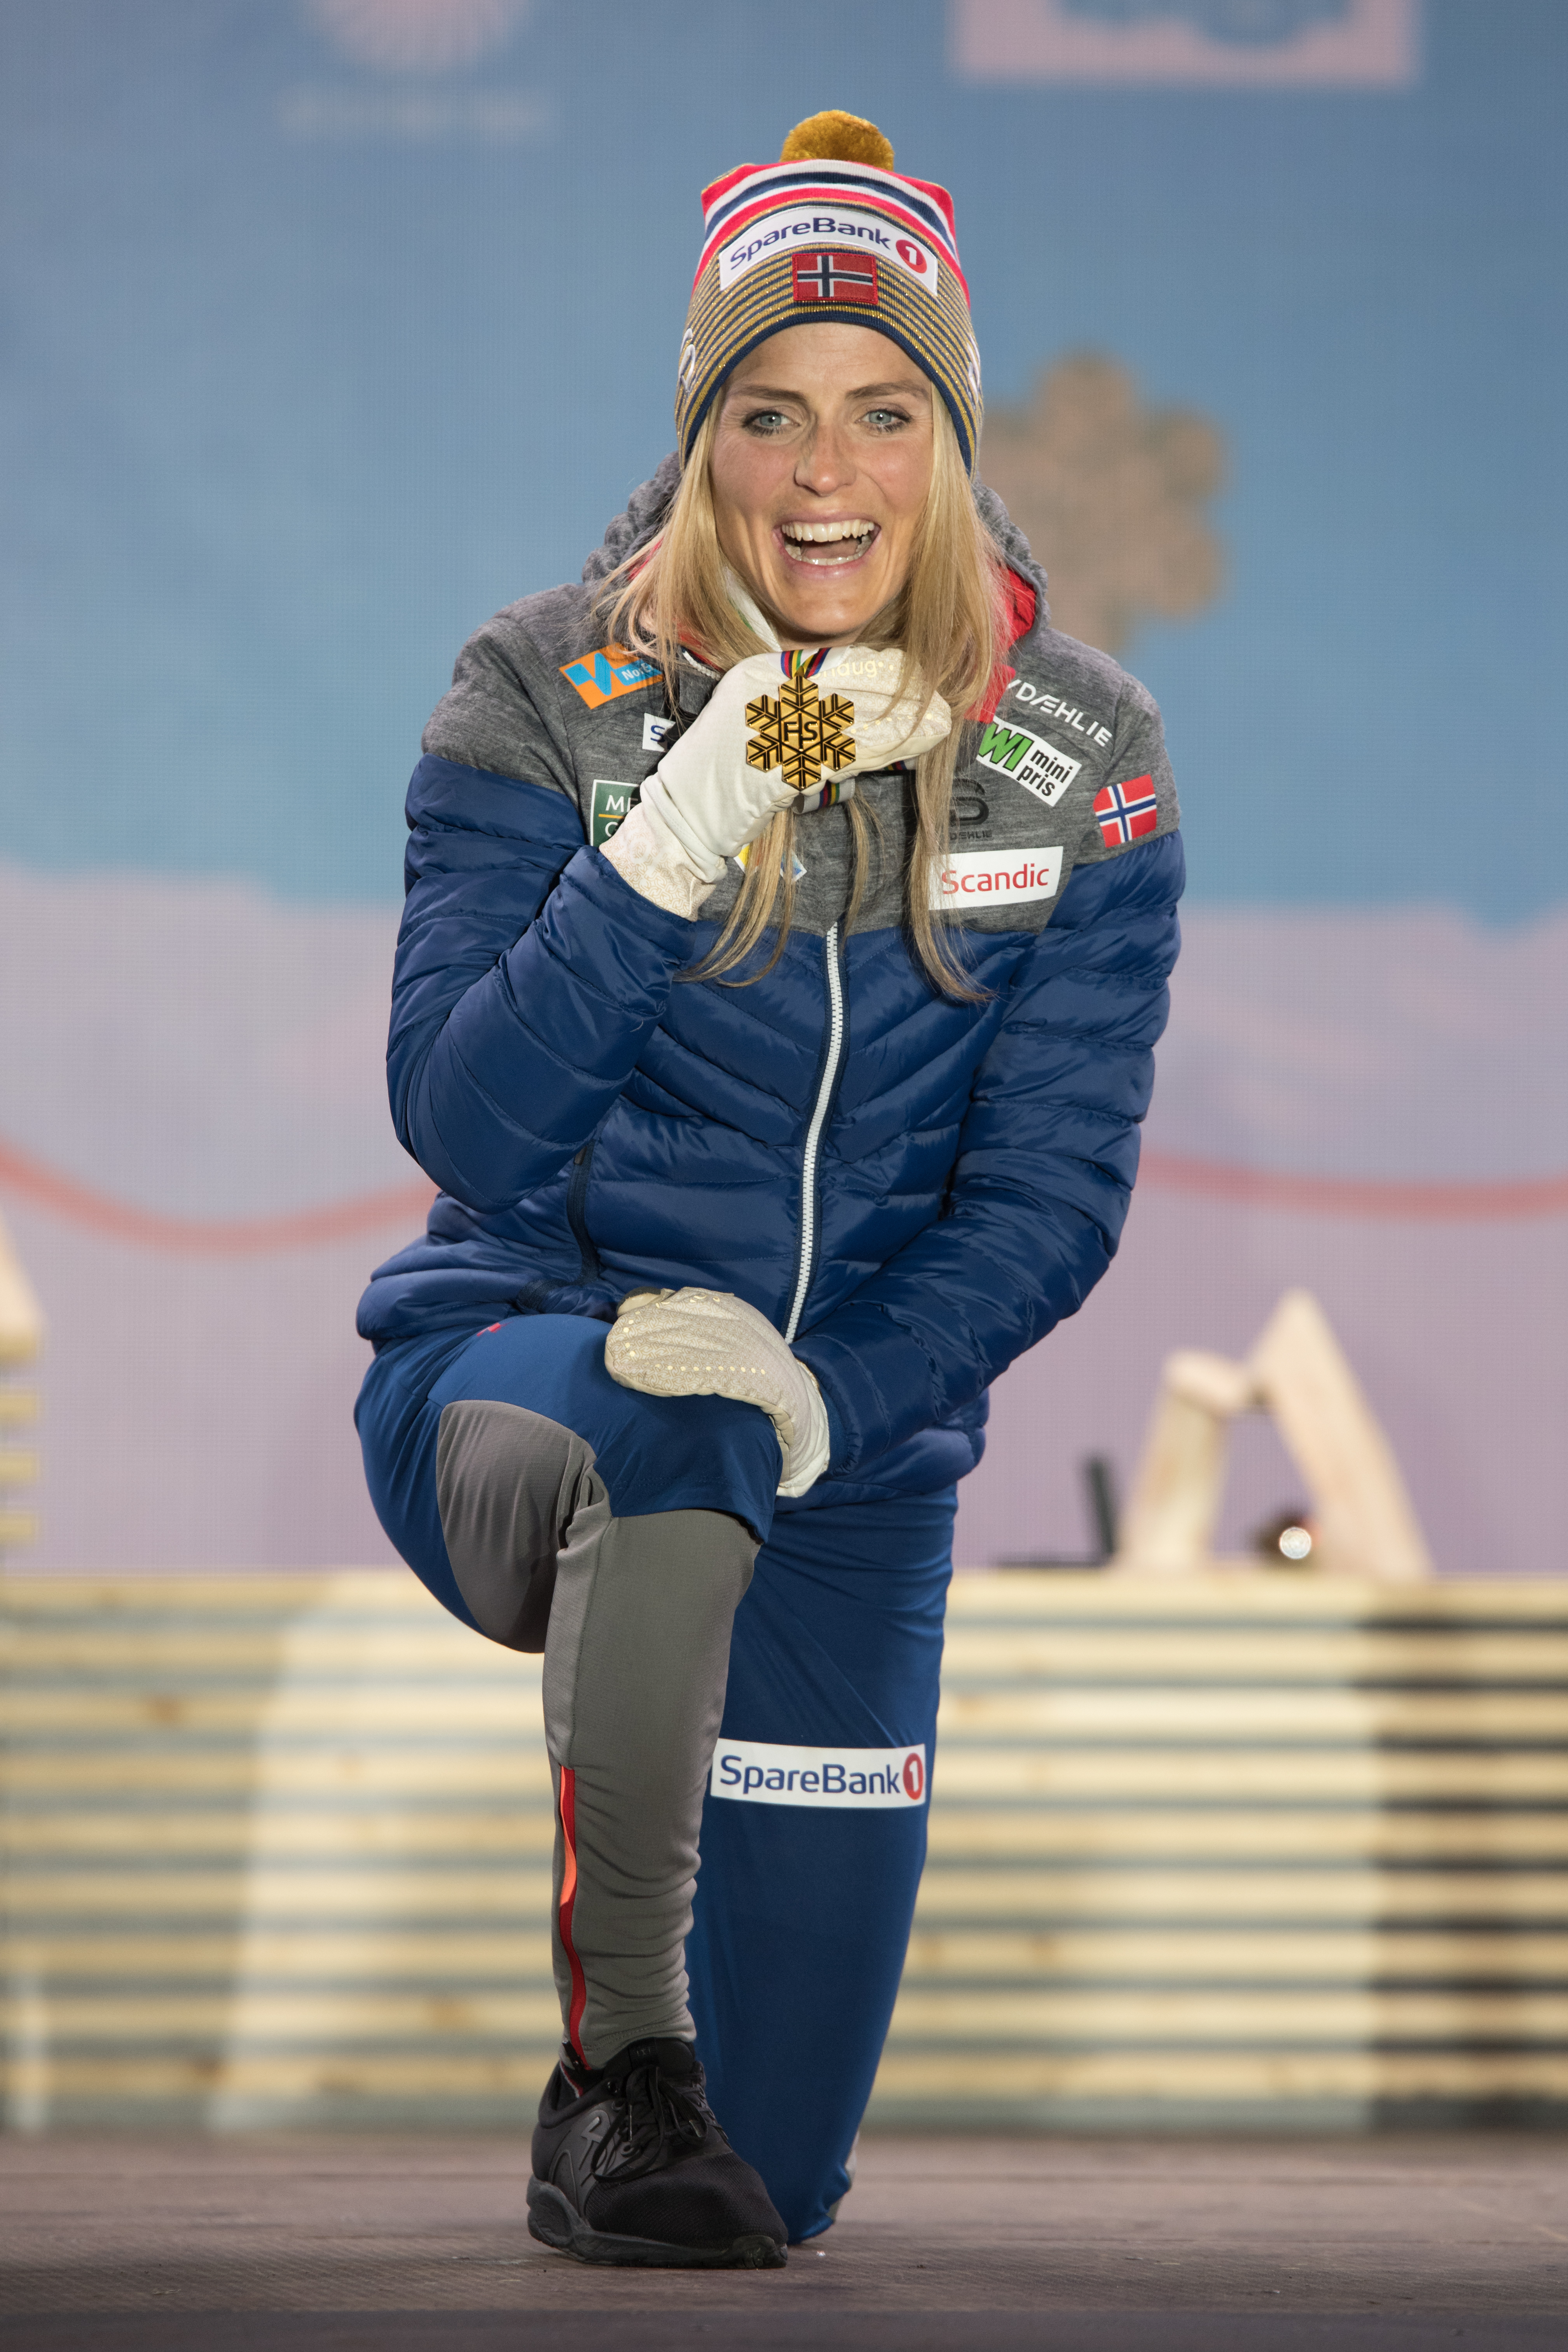 File 20190227 Fis Nwsc Seefeld Medal Ceremony Therese Johaug 850 5308 Jpg Wikimedia Commons